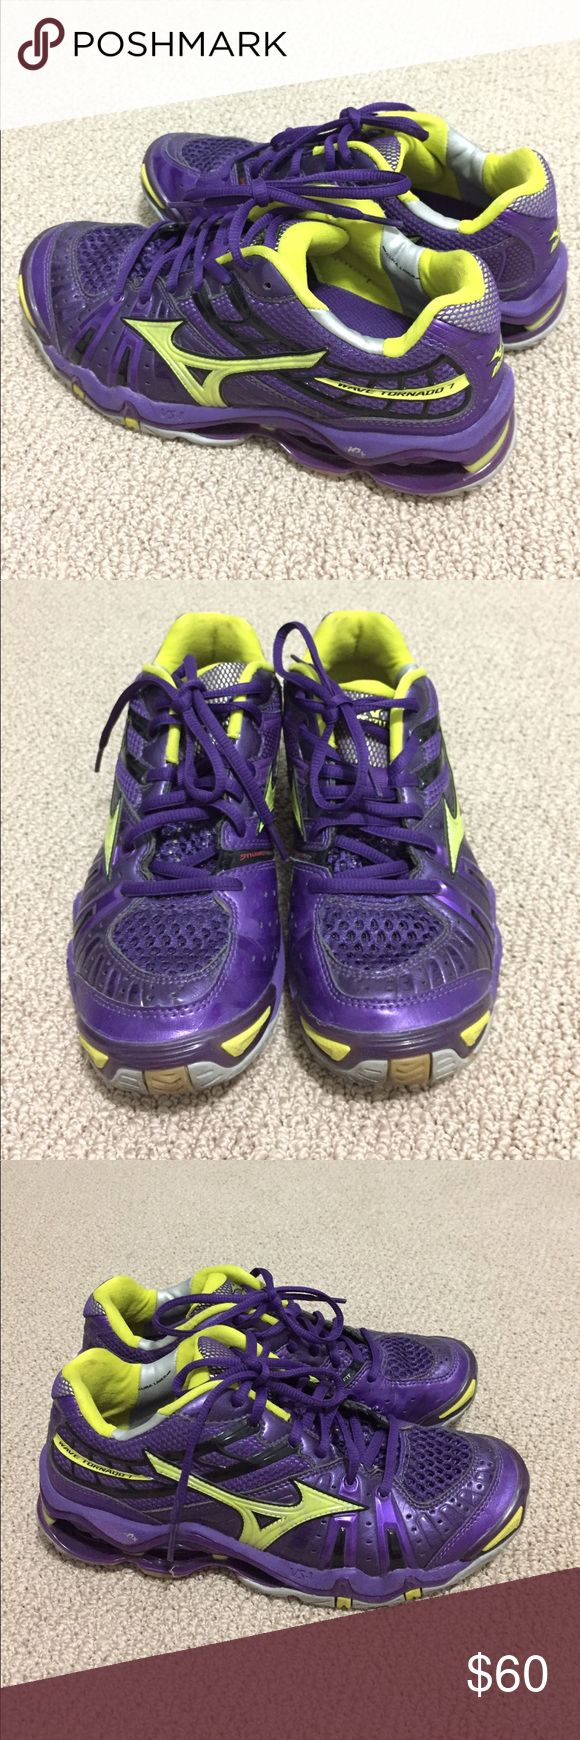 Lightly used Mizuno Wave Tornado VII size 8 Only worn a few times. Great condition! Mizuno indoor court shoes (volleyball, squash, badminton, ect). Purple/yellow. Dynamic fit model gives custom fit. Size 8 women US. Mizuno Shoes Athletic Shoes